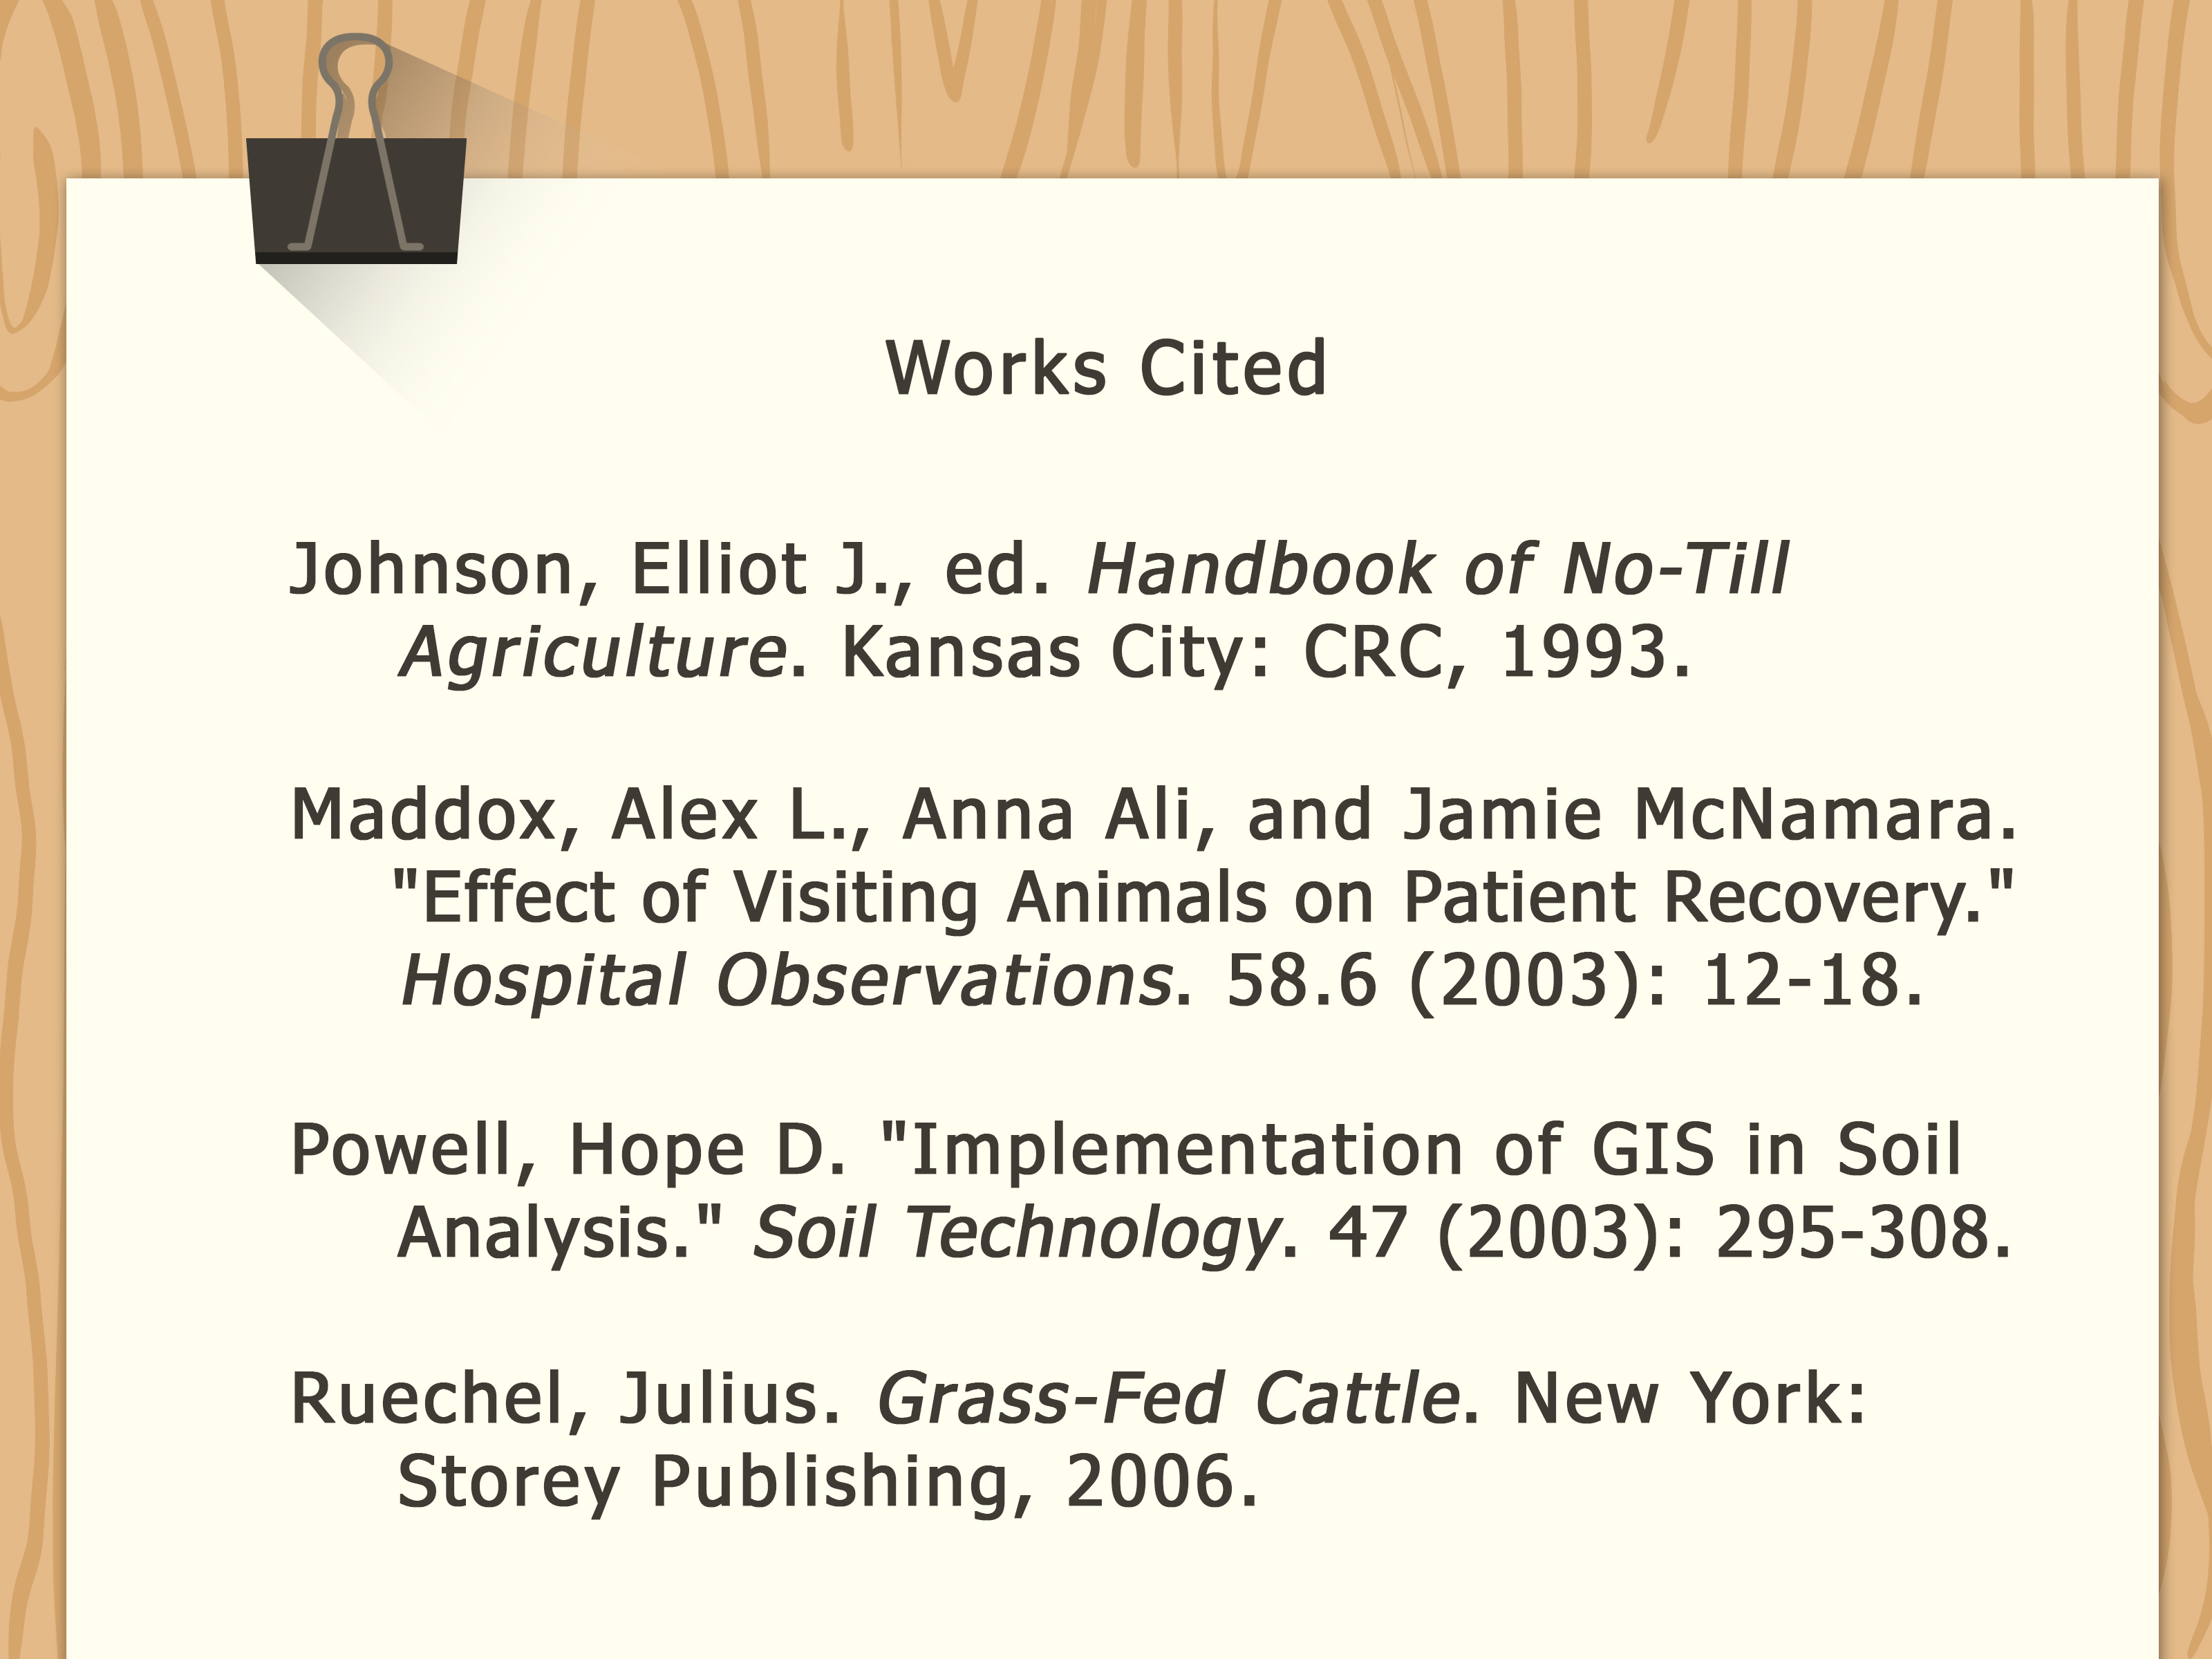 011 Research Paper Cite Sources In Mla Format Step Version Citations Awesome A Citing Citation Example Full